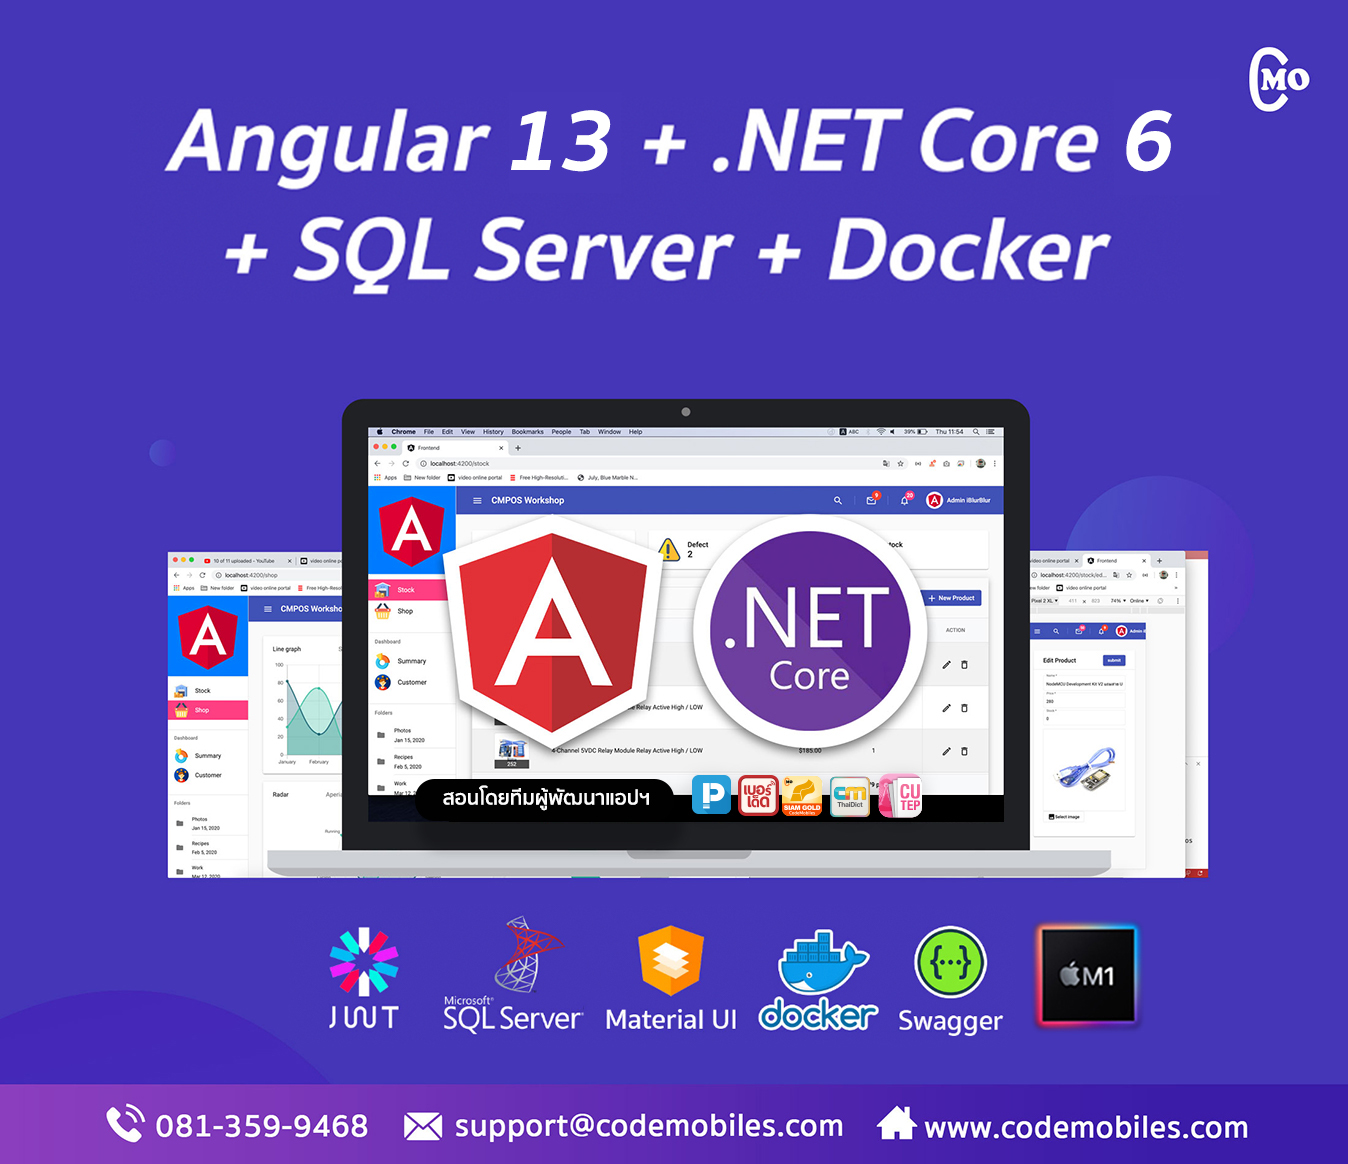 หลักสูตร Angular / ASP.NET CORE / SQL Server / Docker โดย